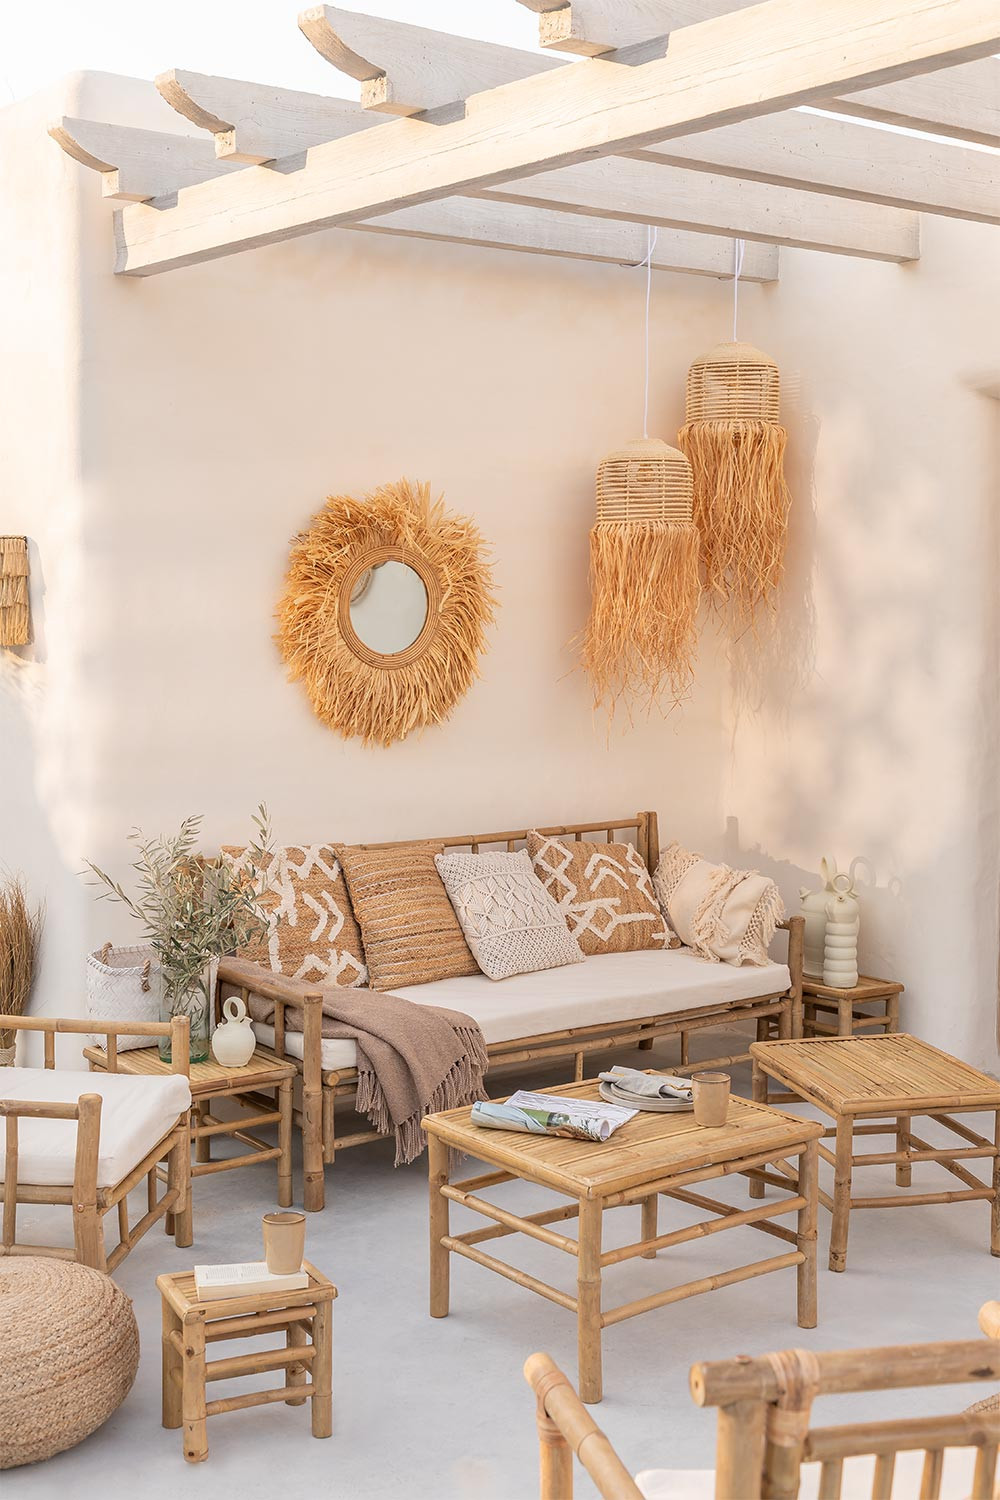 Jarvis Bamboo Nest Tables, gallery image 1